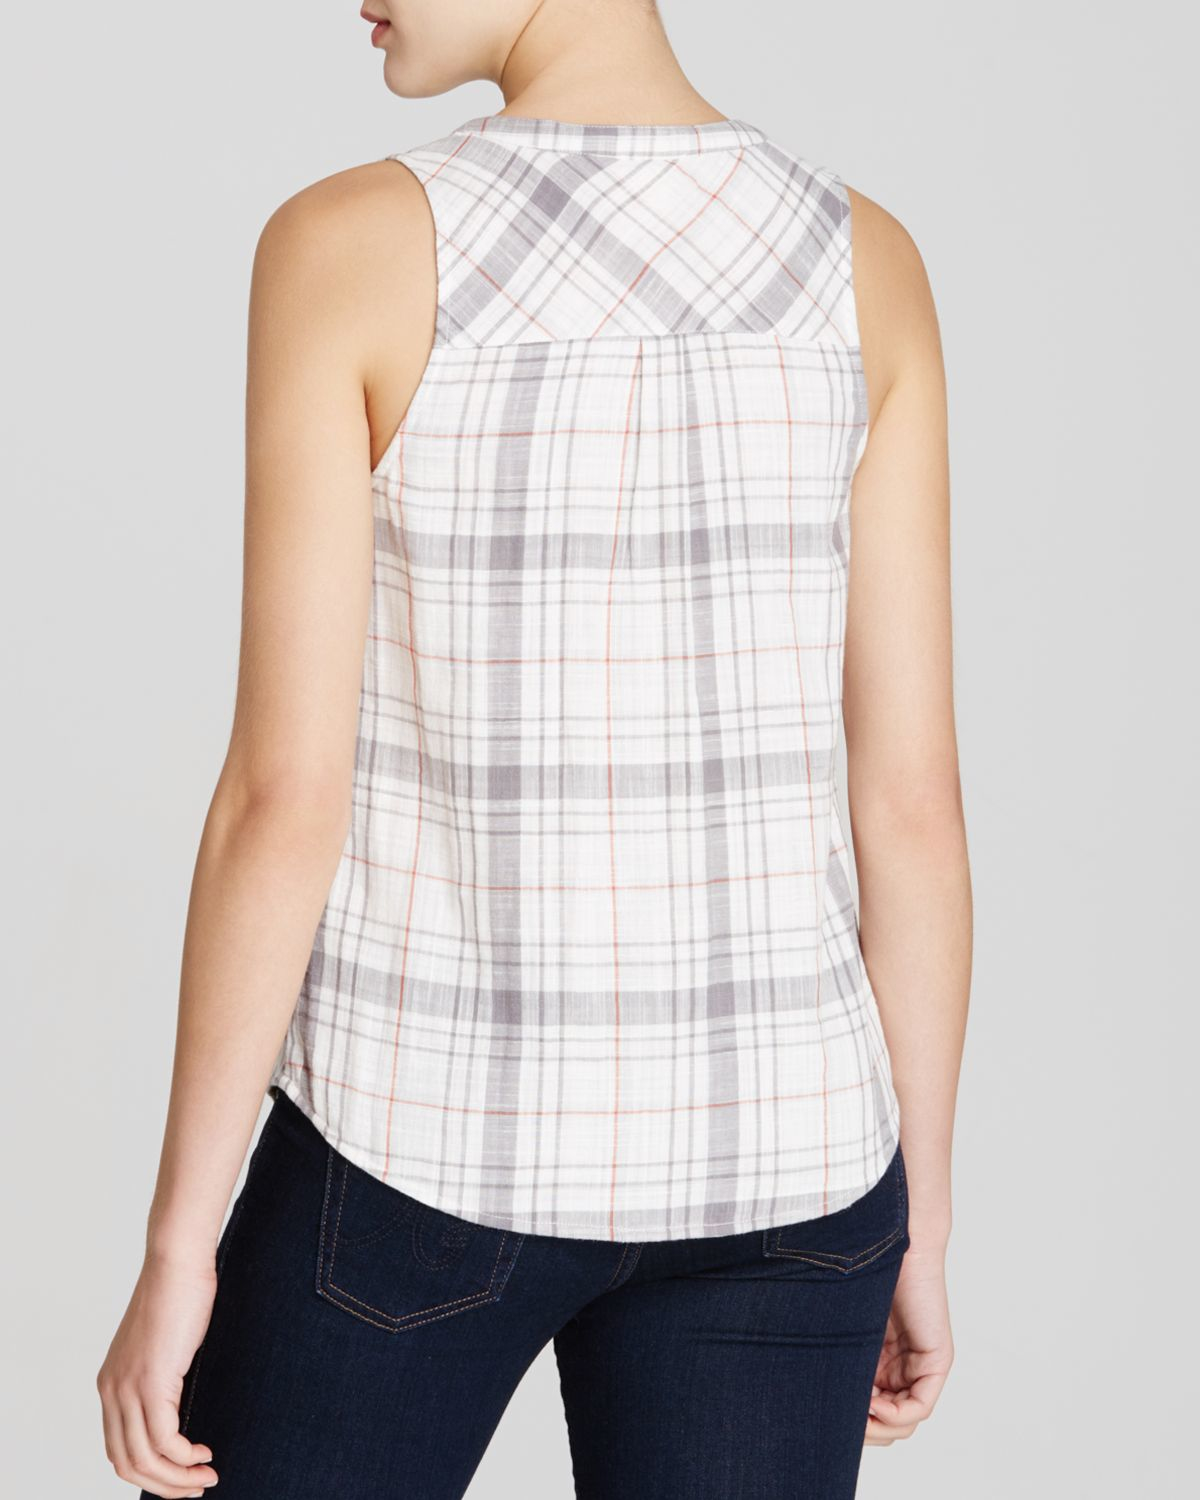 Lyst soft joie bardon b plaid top in white for Soft joie plaid shirt